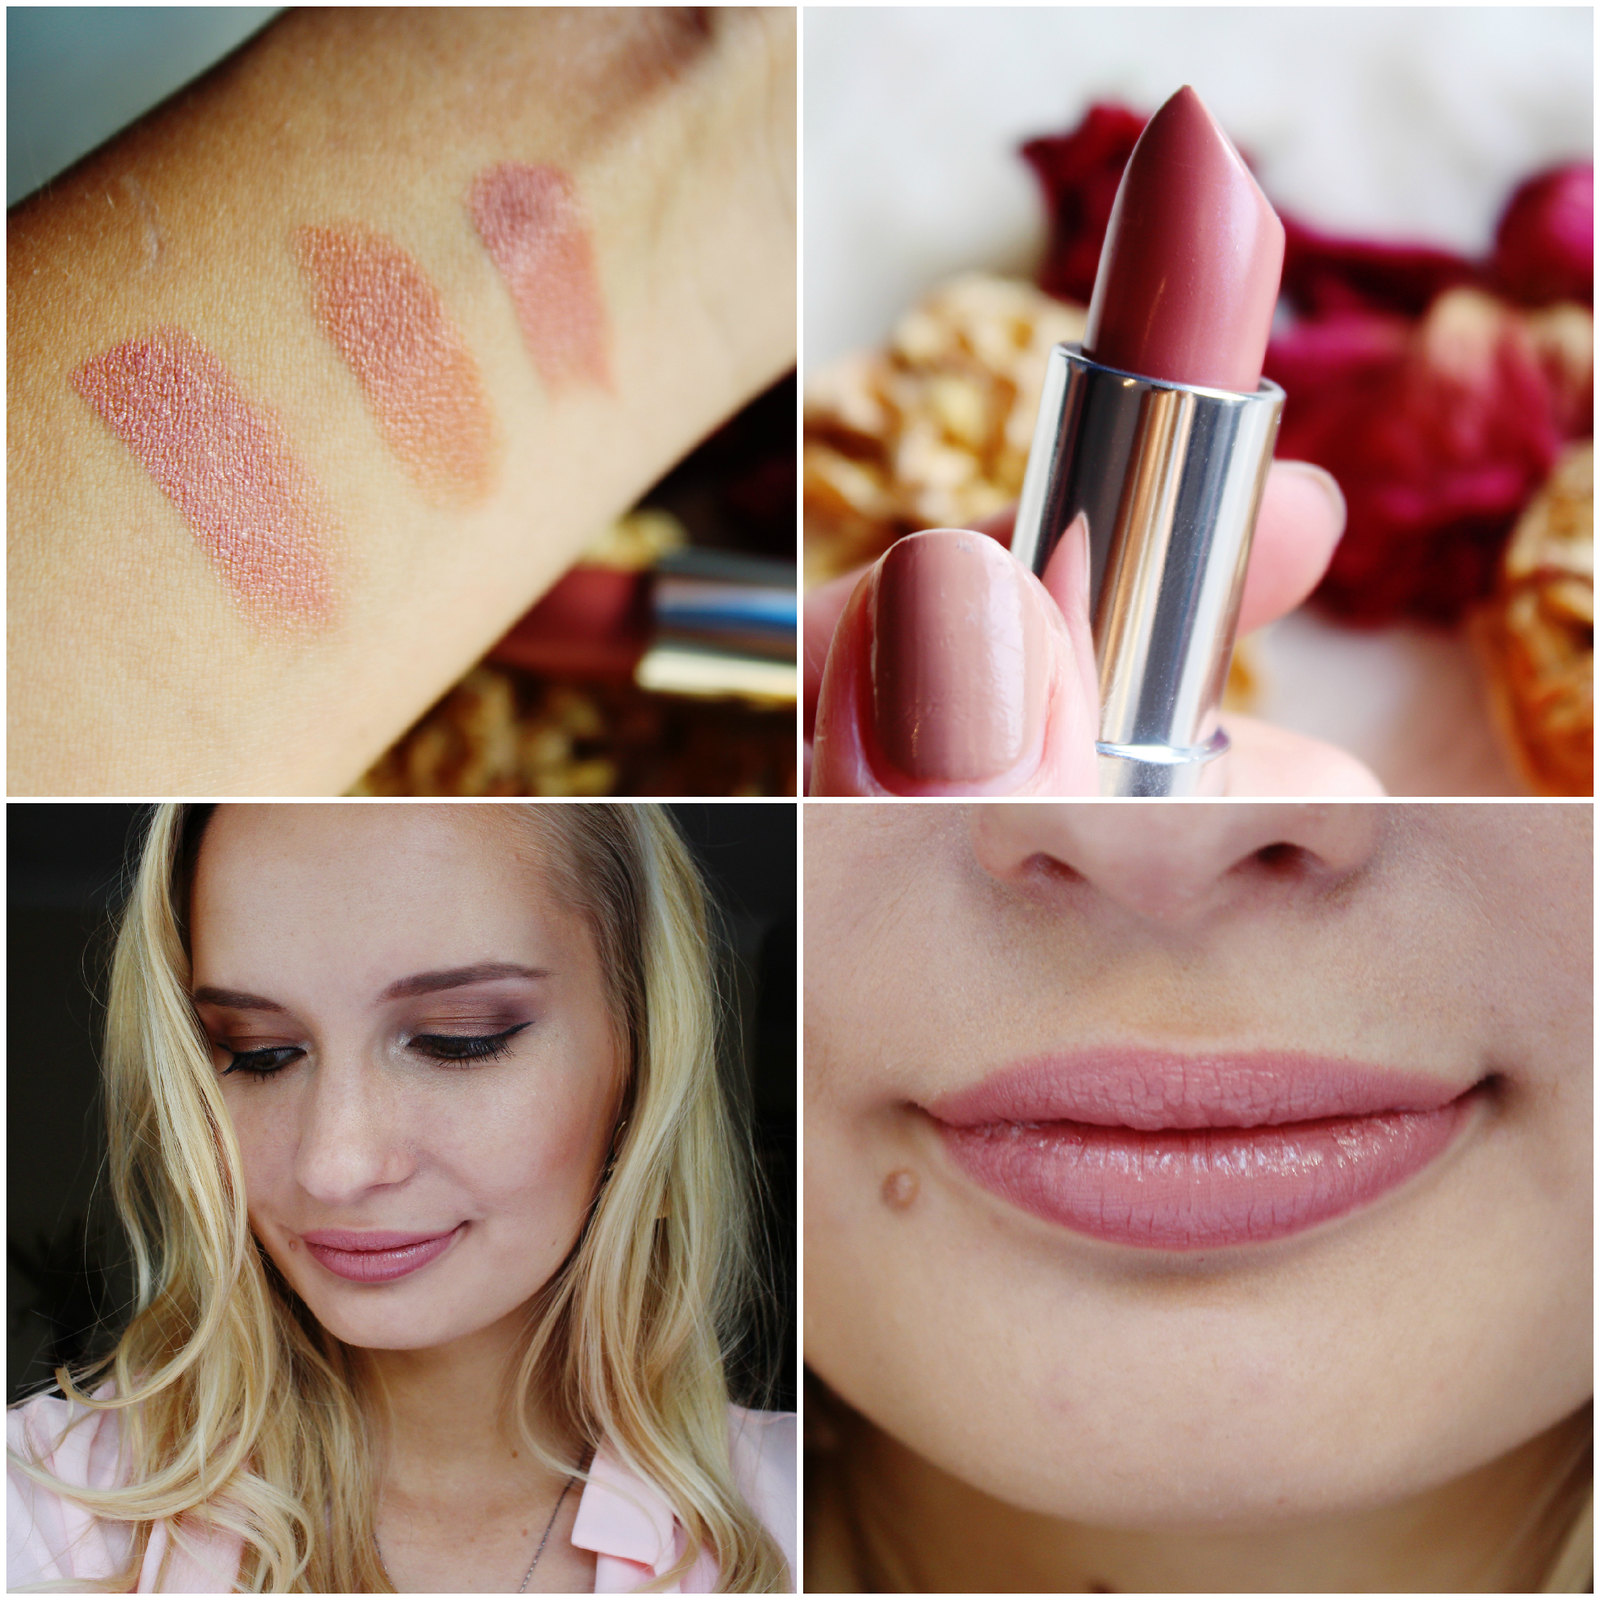 Rimmel Long Lasting Finish Kate Nude Lipstick collection review shade 45